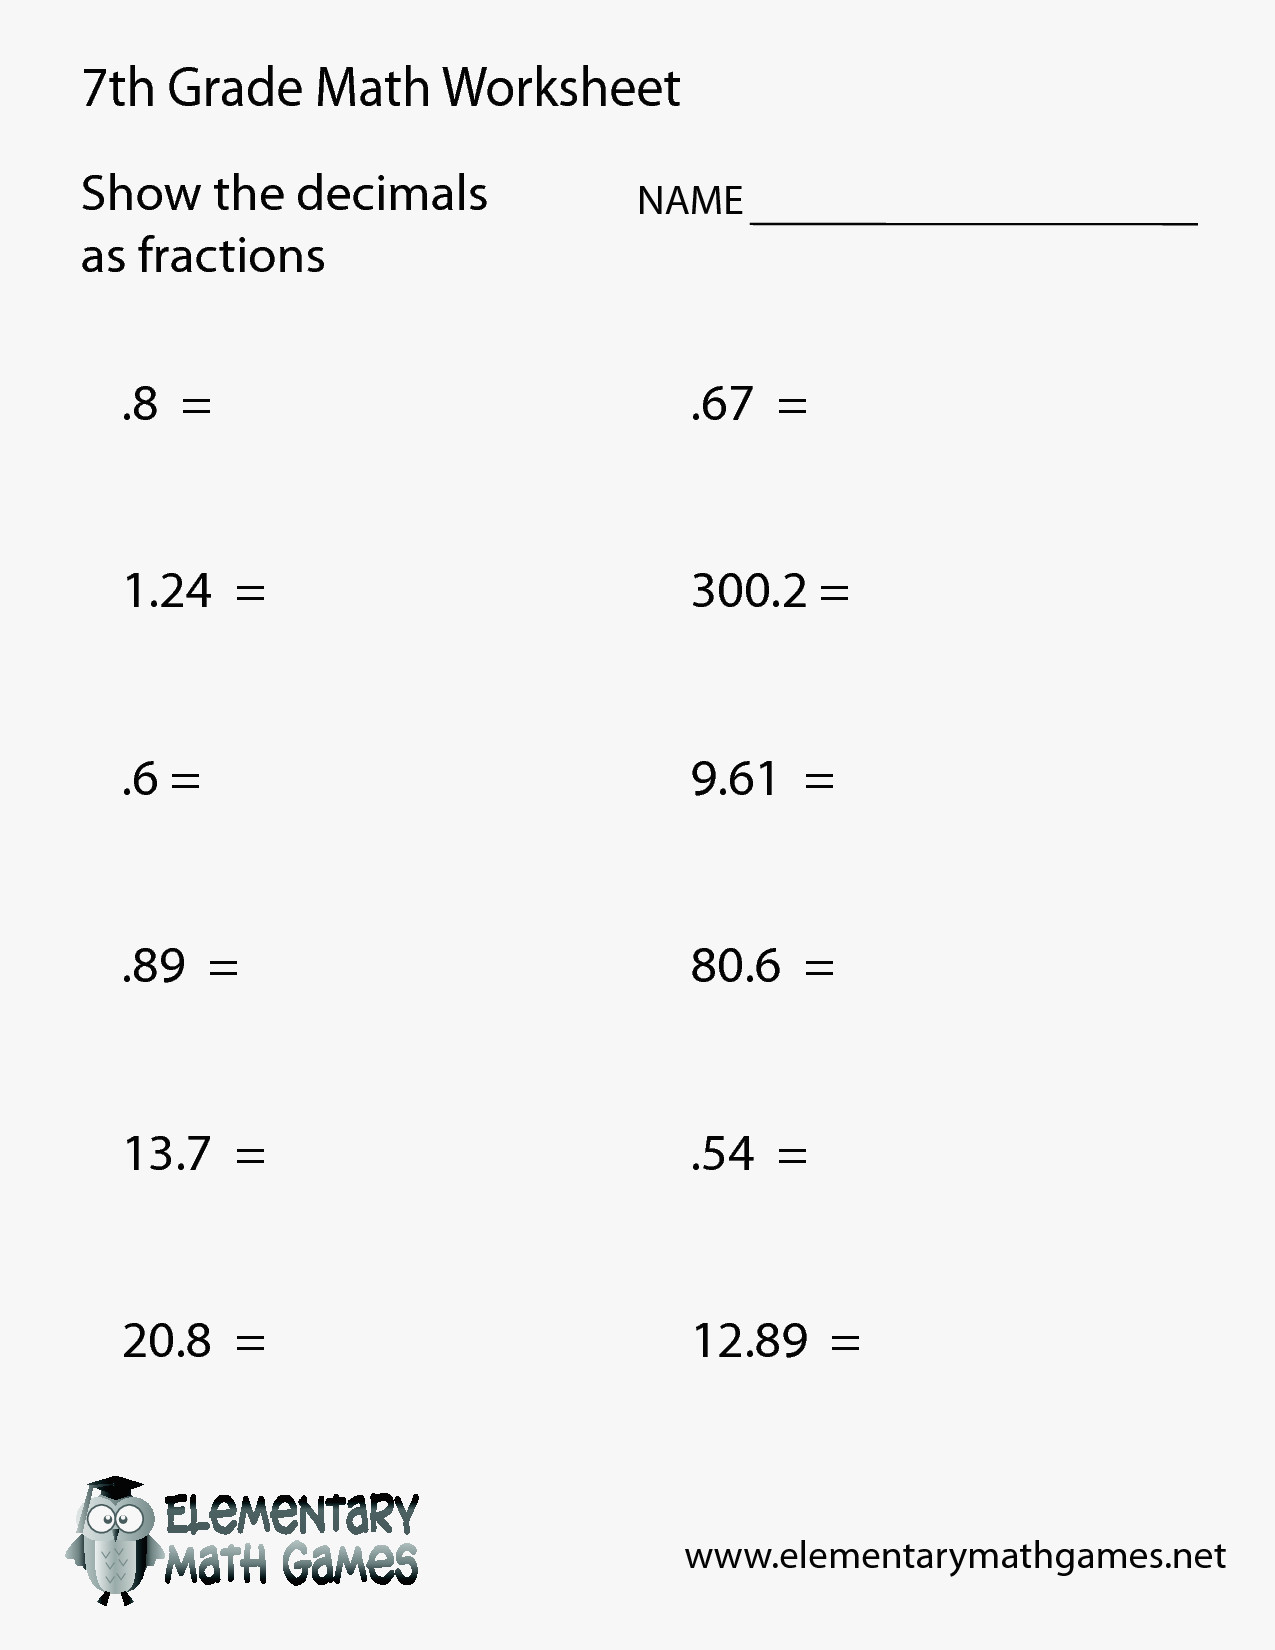 56 Elegant Of 7Th Math Worksheets Pictures | 7Th Math Worksheets Printable